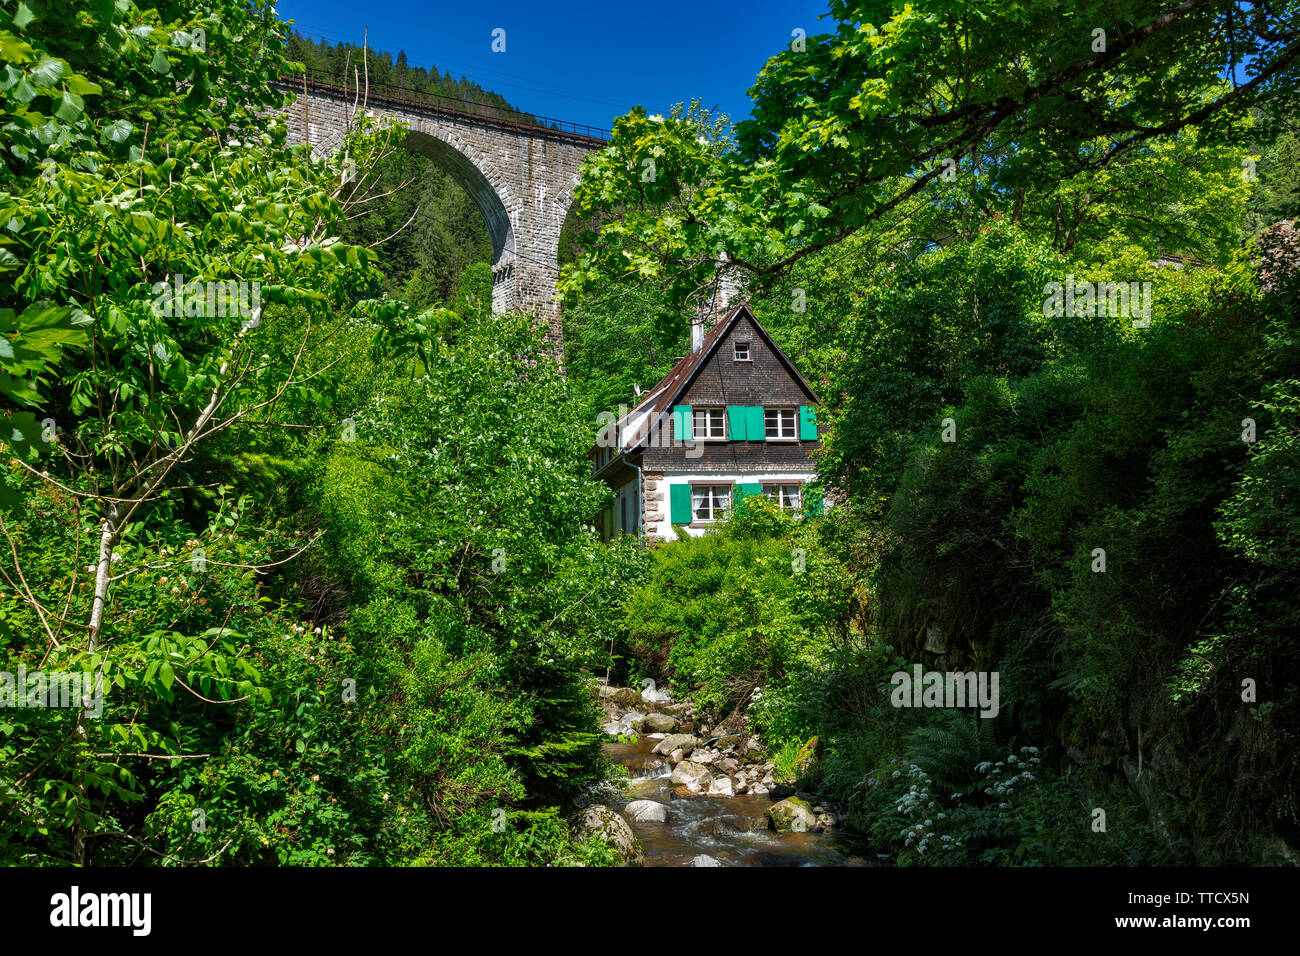 lonely house in the Hoellental near Freiburg, Black Forest, Germany Stock Photo